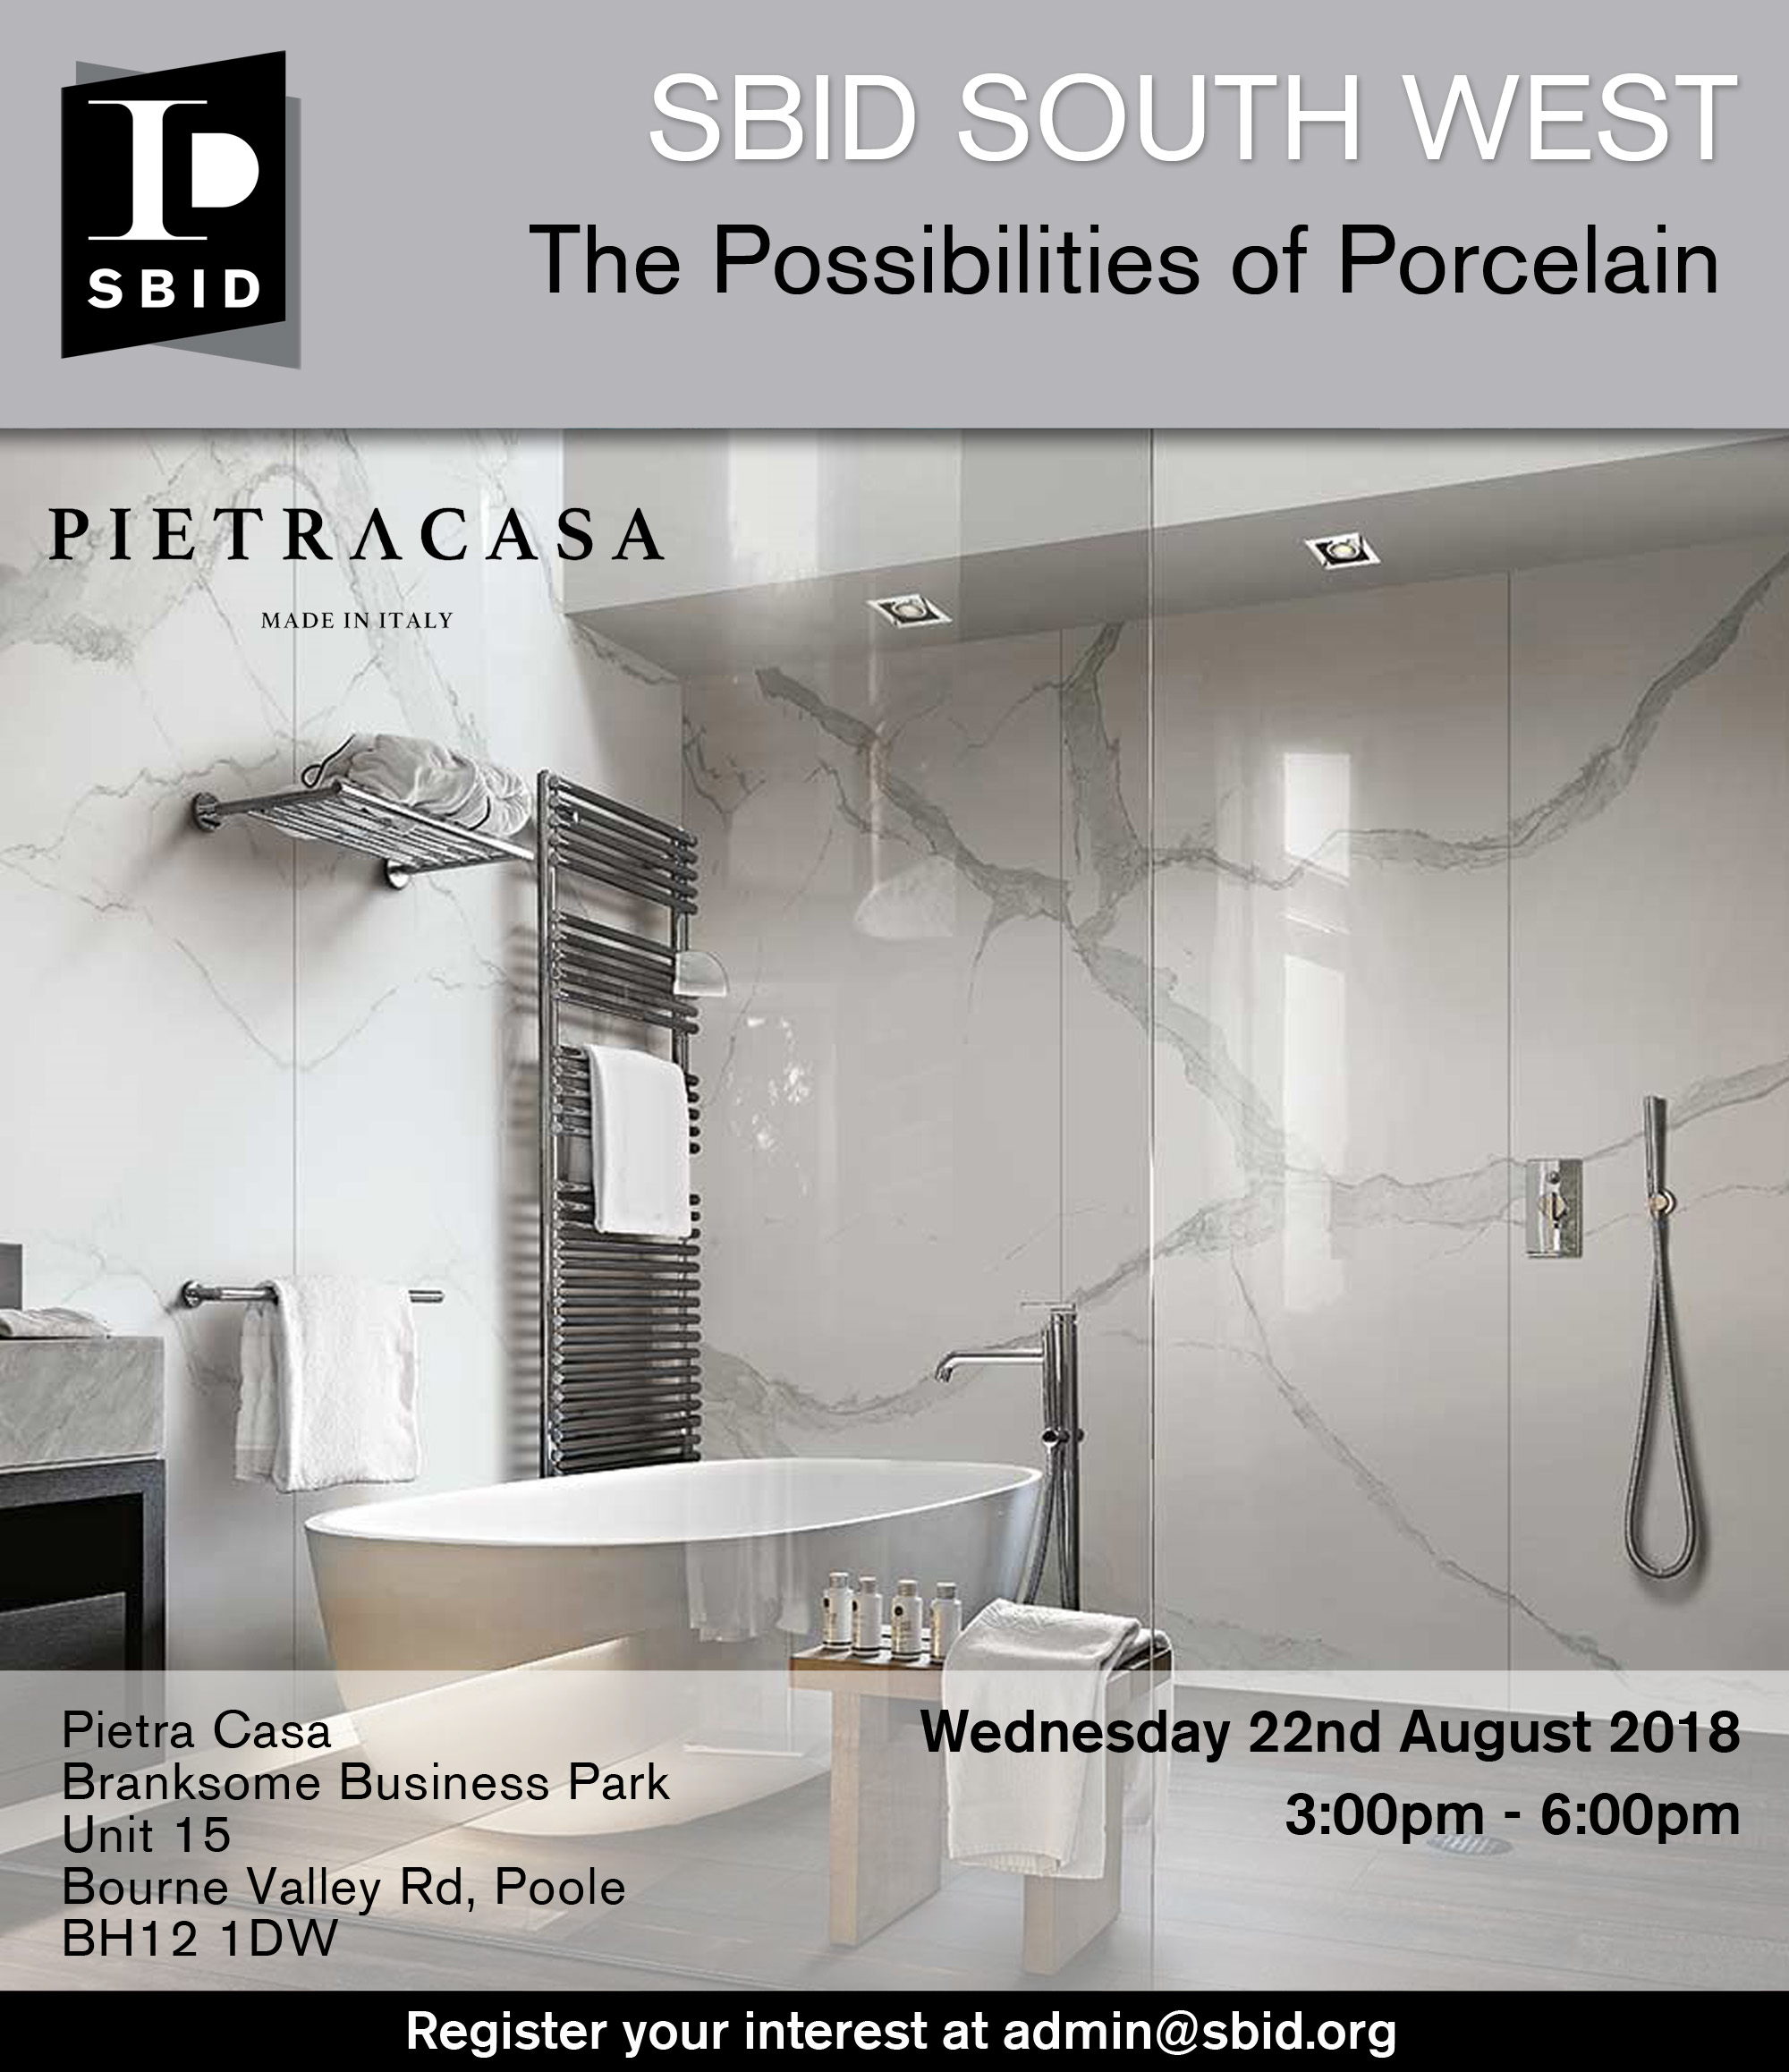 SBID South West interior design event invitation for The Possibilities of Porcelain